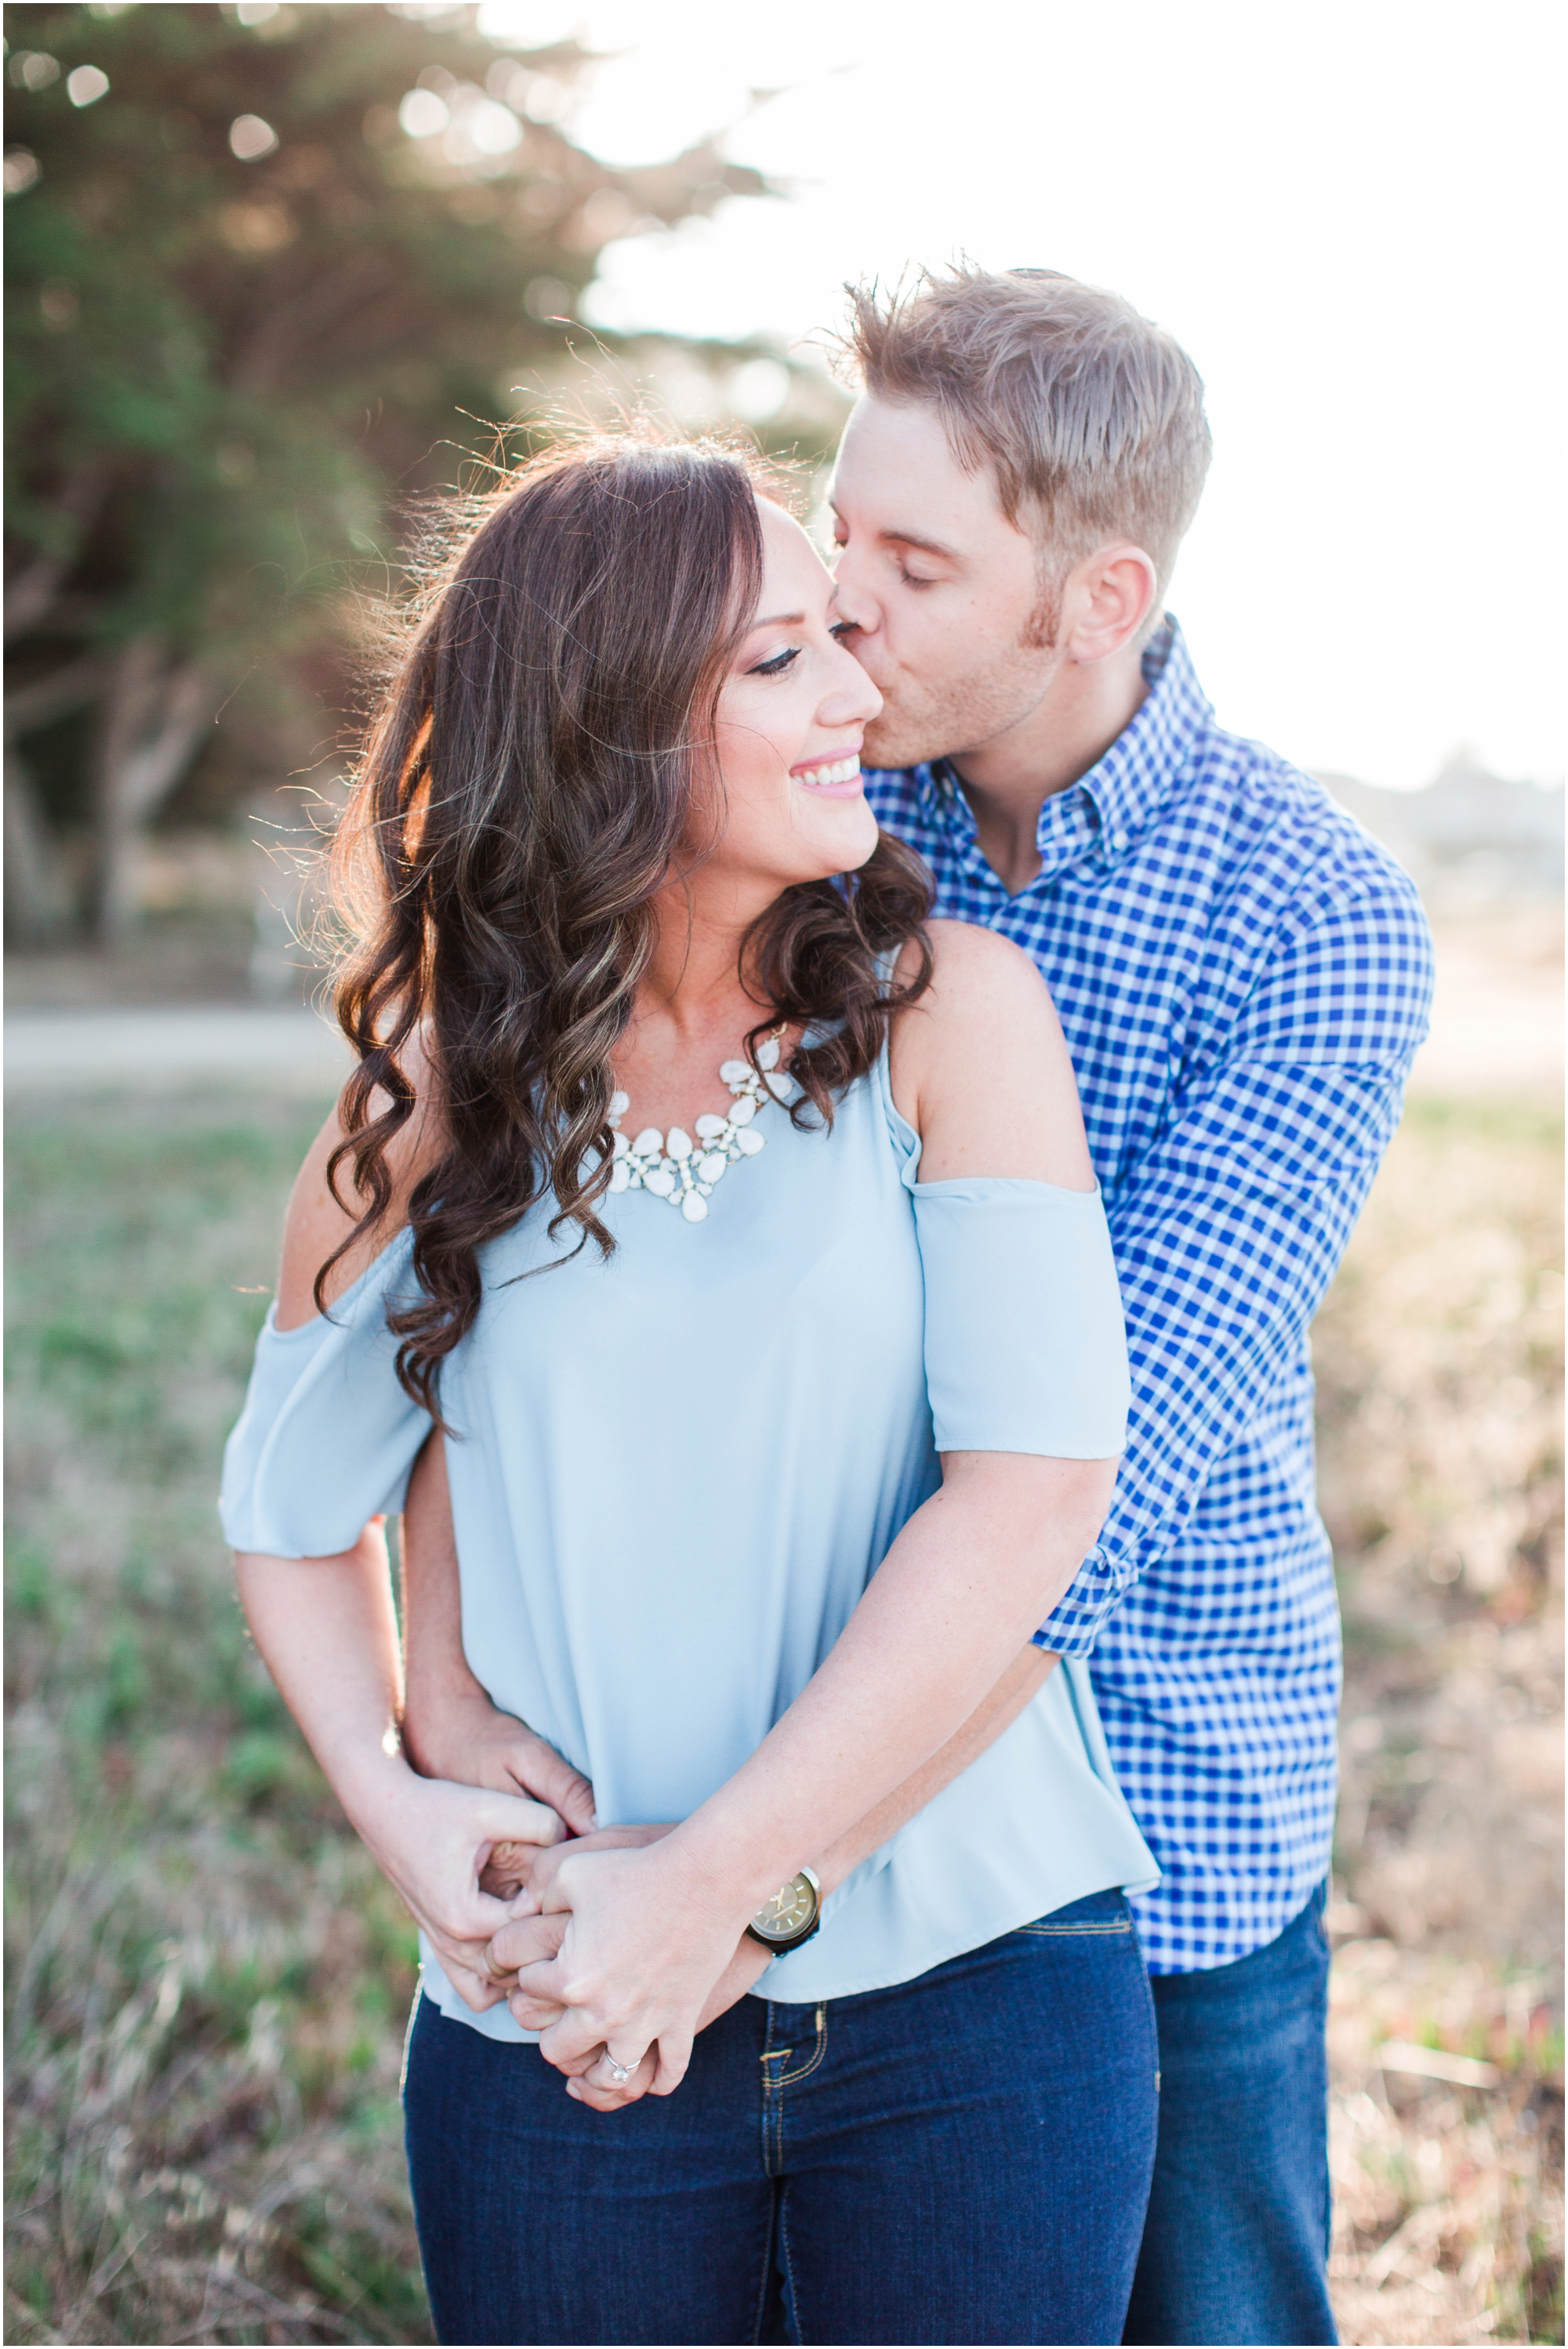 Berwick Park Monterey engagement pictures by Briana Calderon Photography_2379.jpg